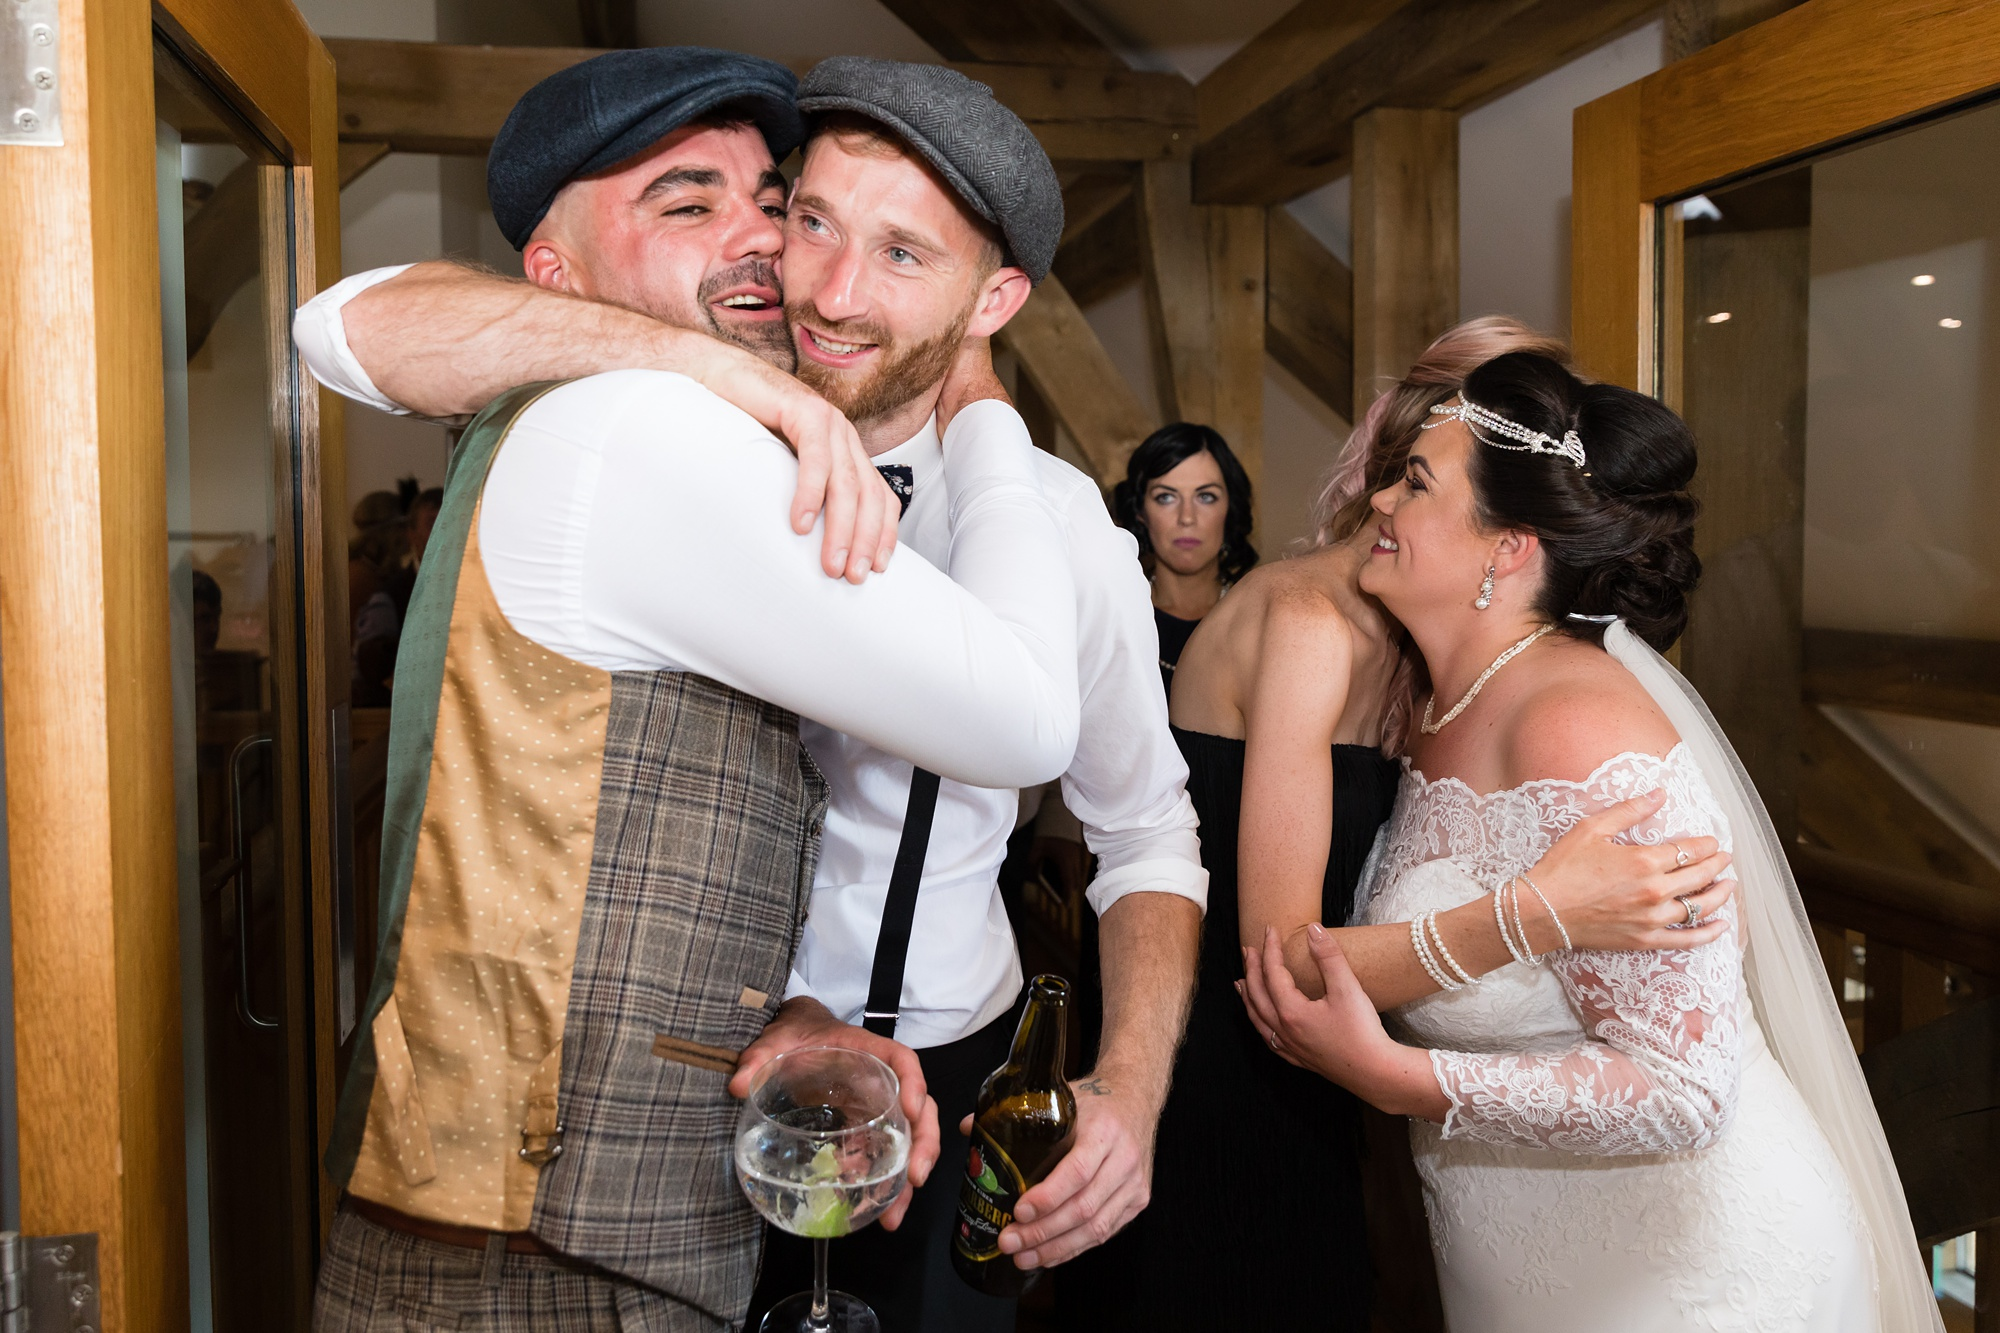 Groom gives big hug to guest at Sandburn Hall wedding.